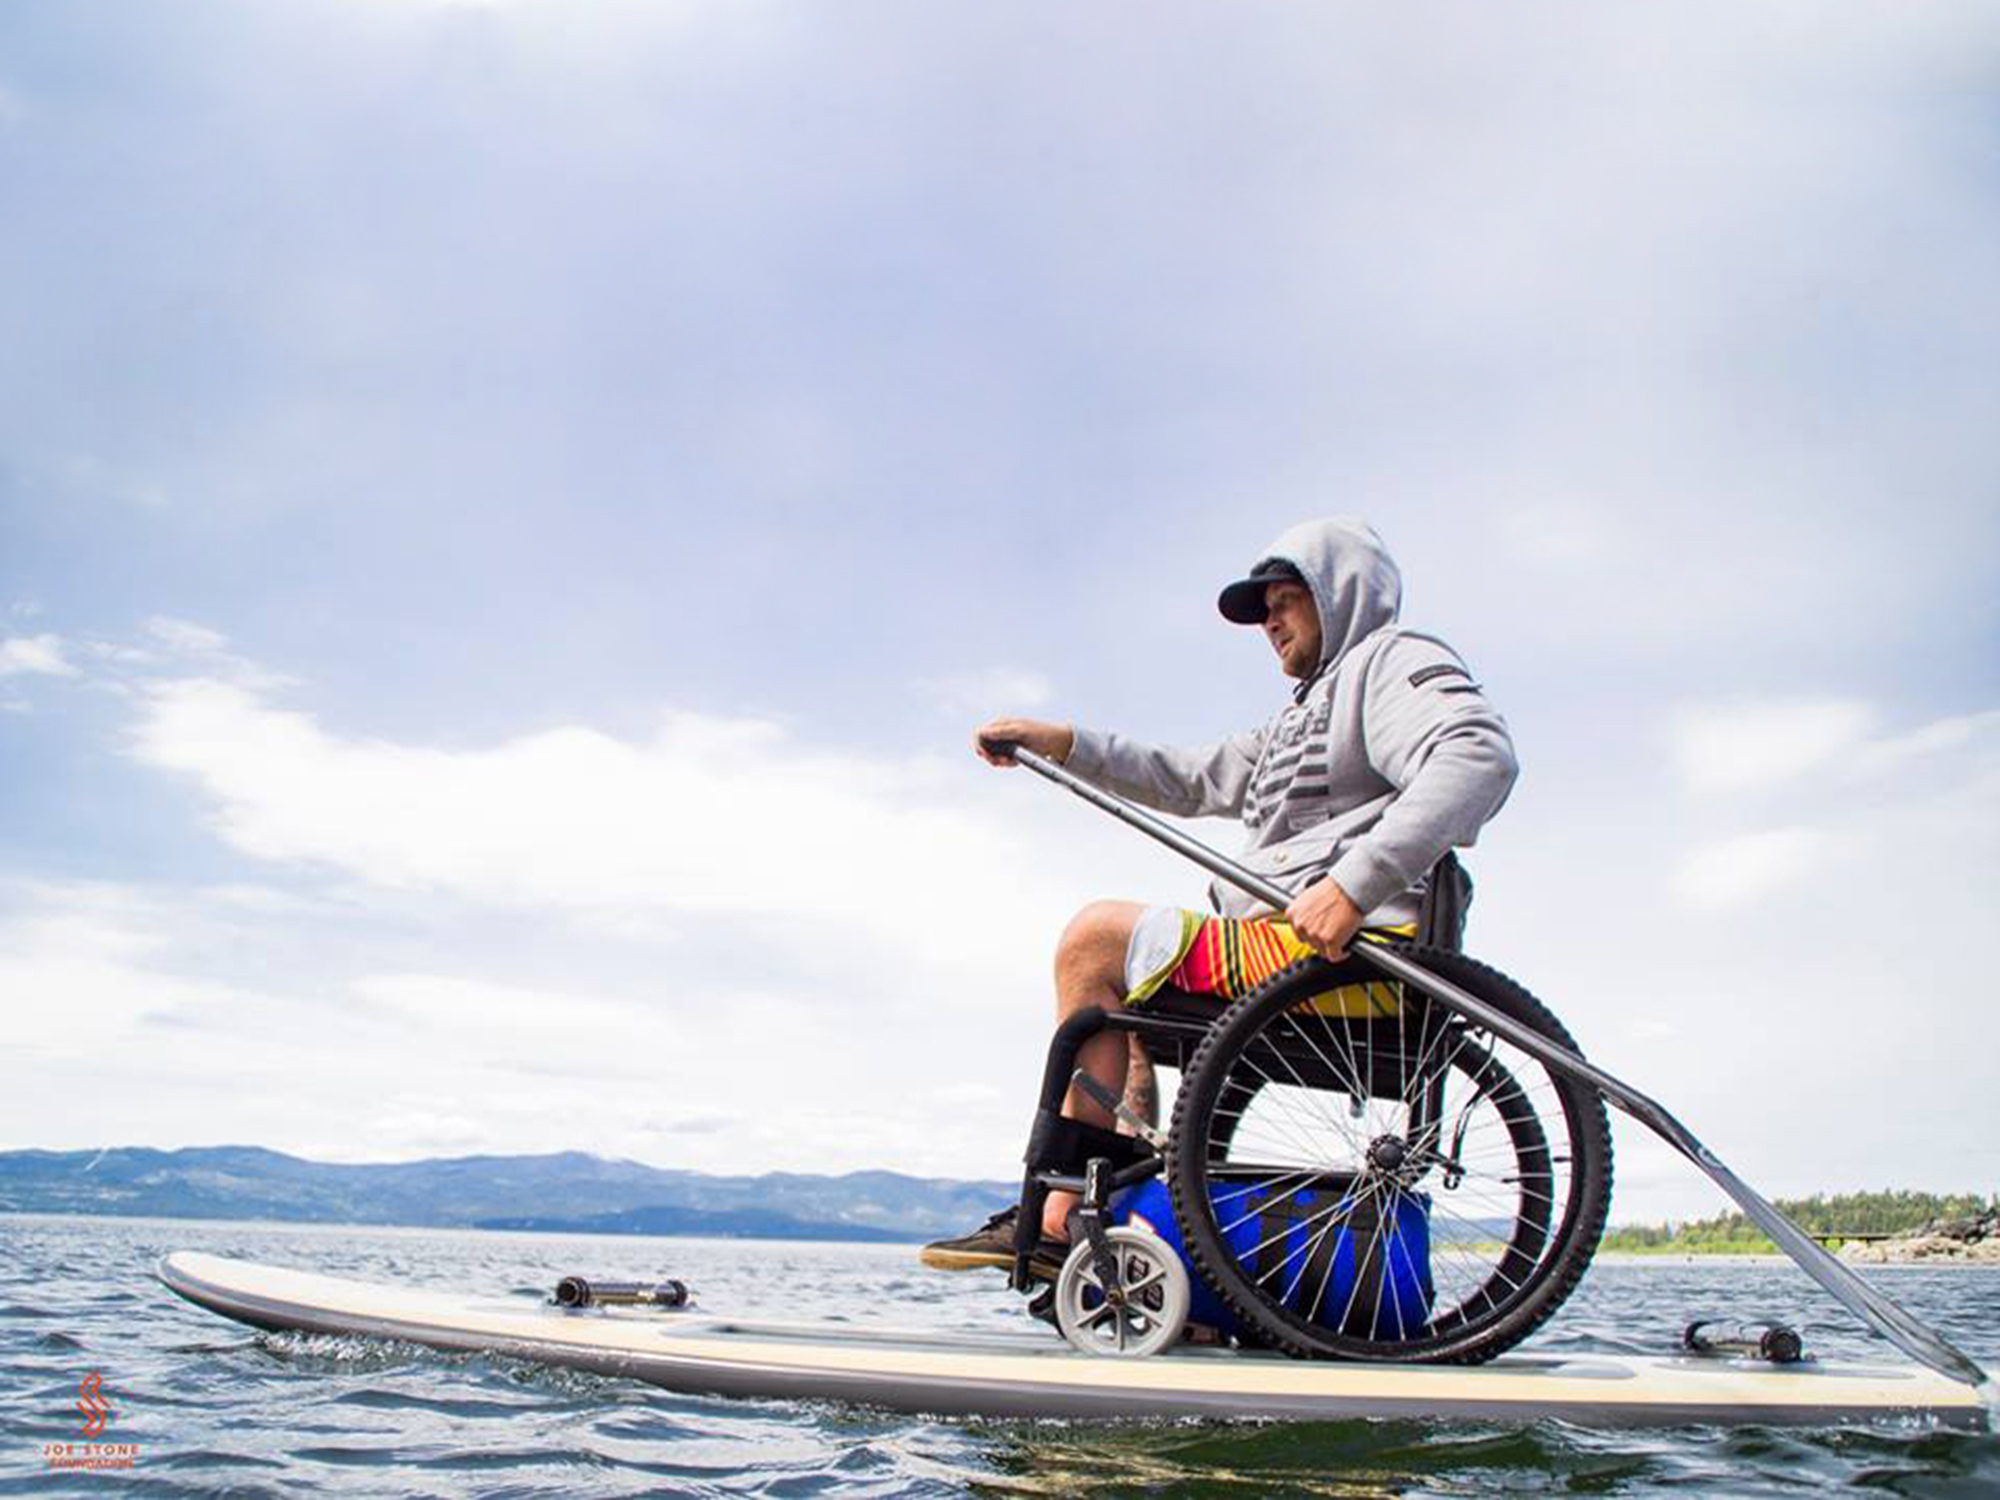 Disabled person paddling on a board